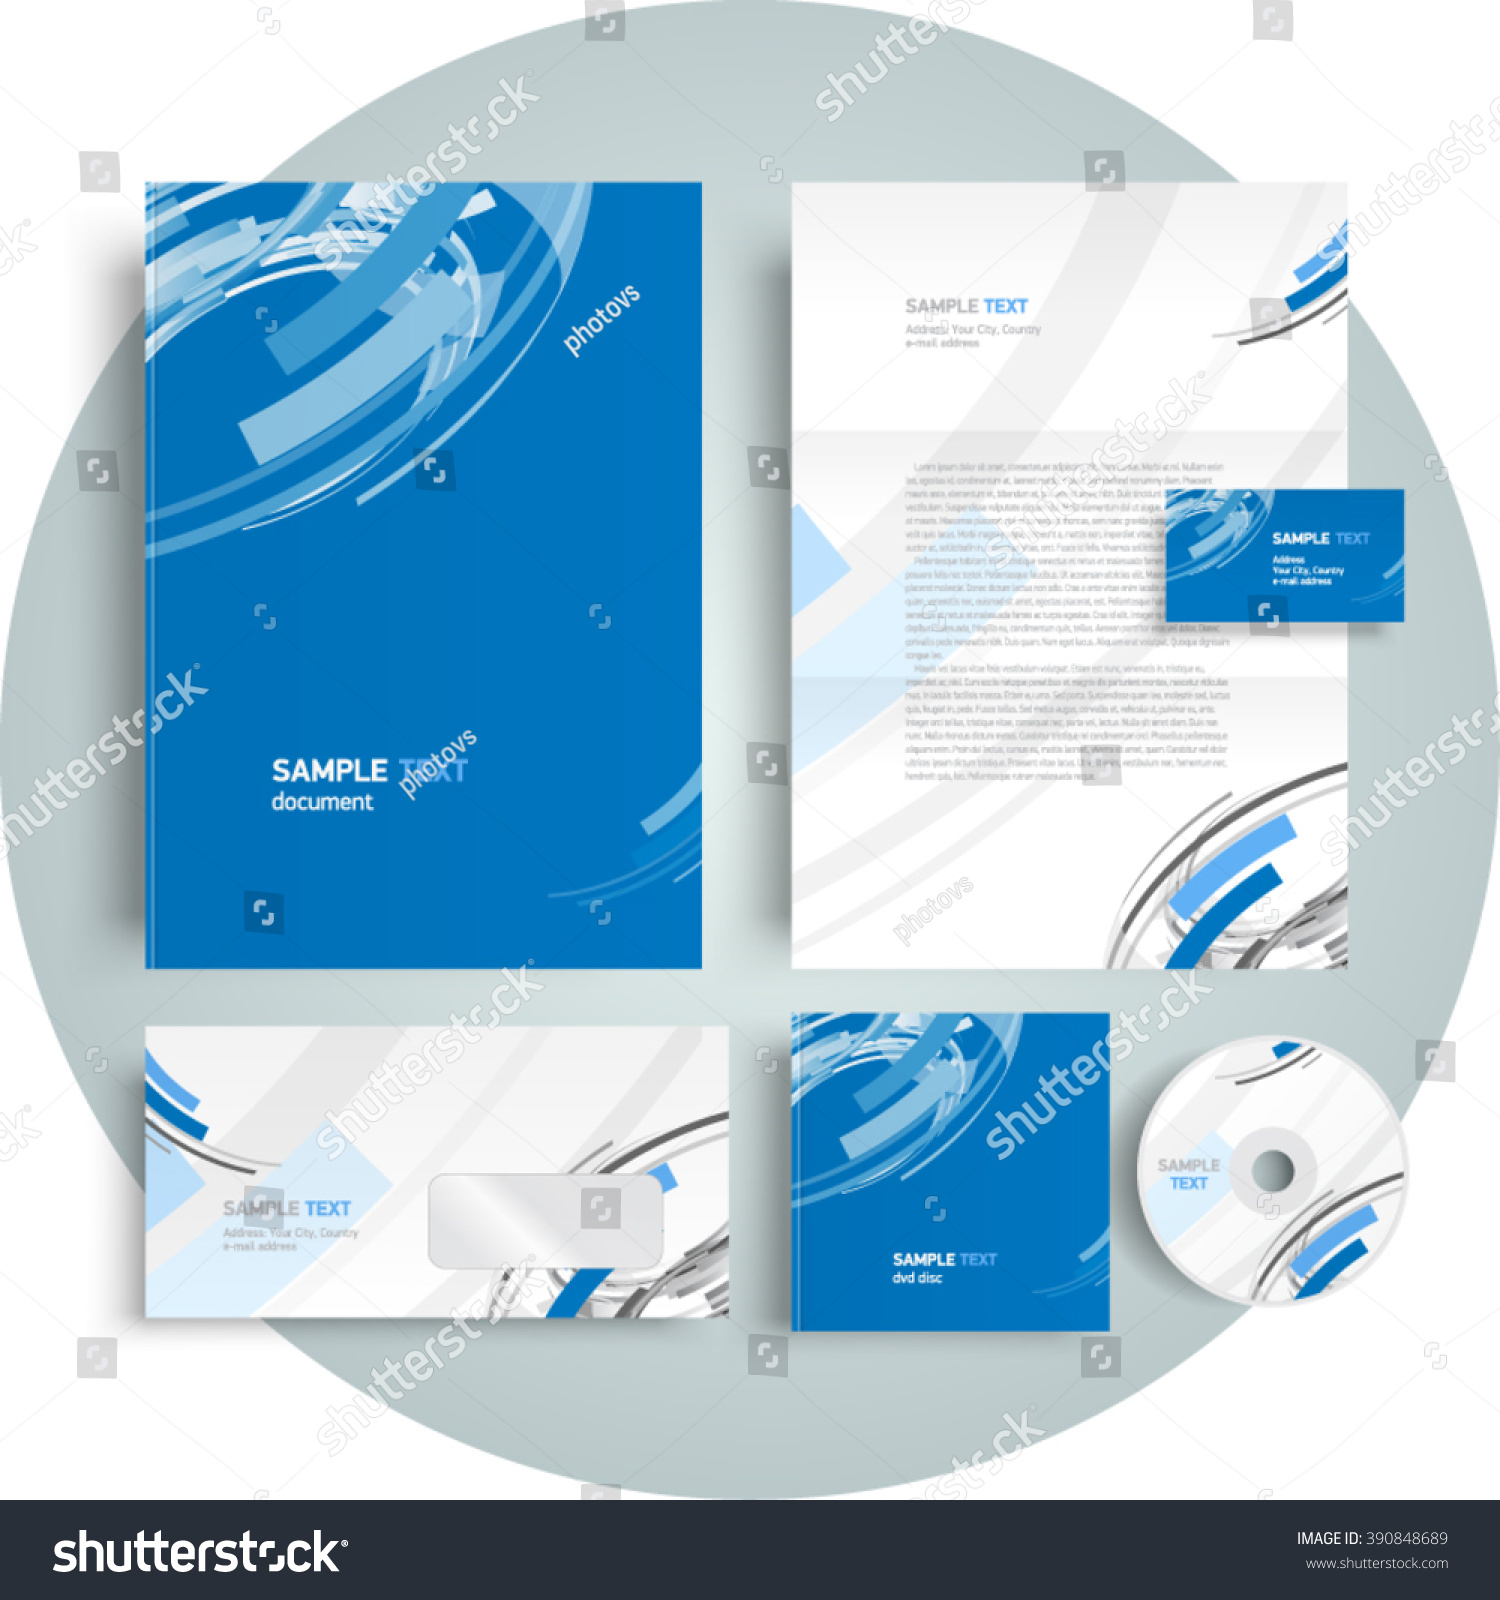 Corporate Identity Design Template Abstract Curves Stock Vector